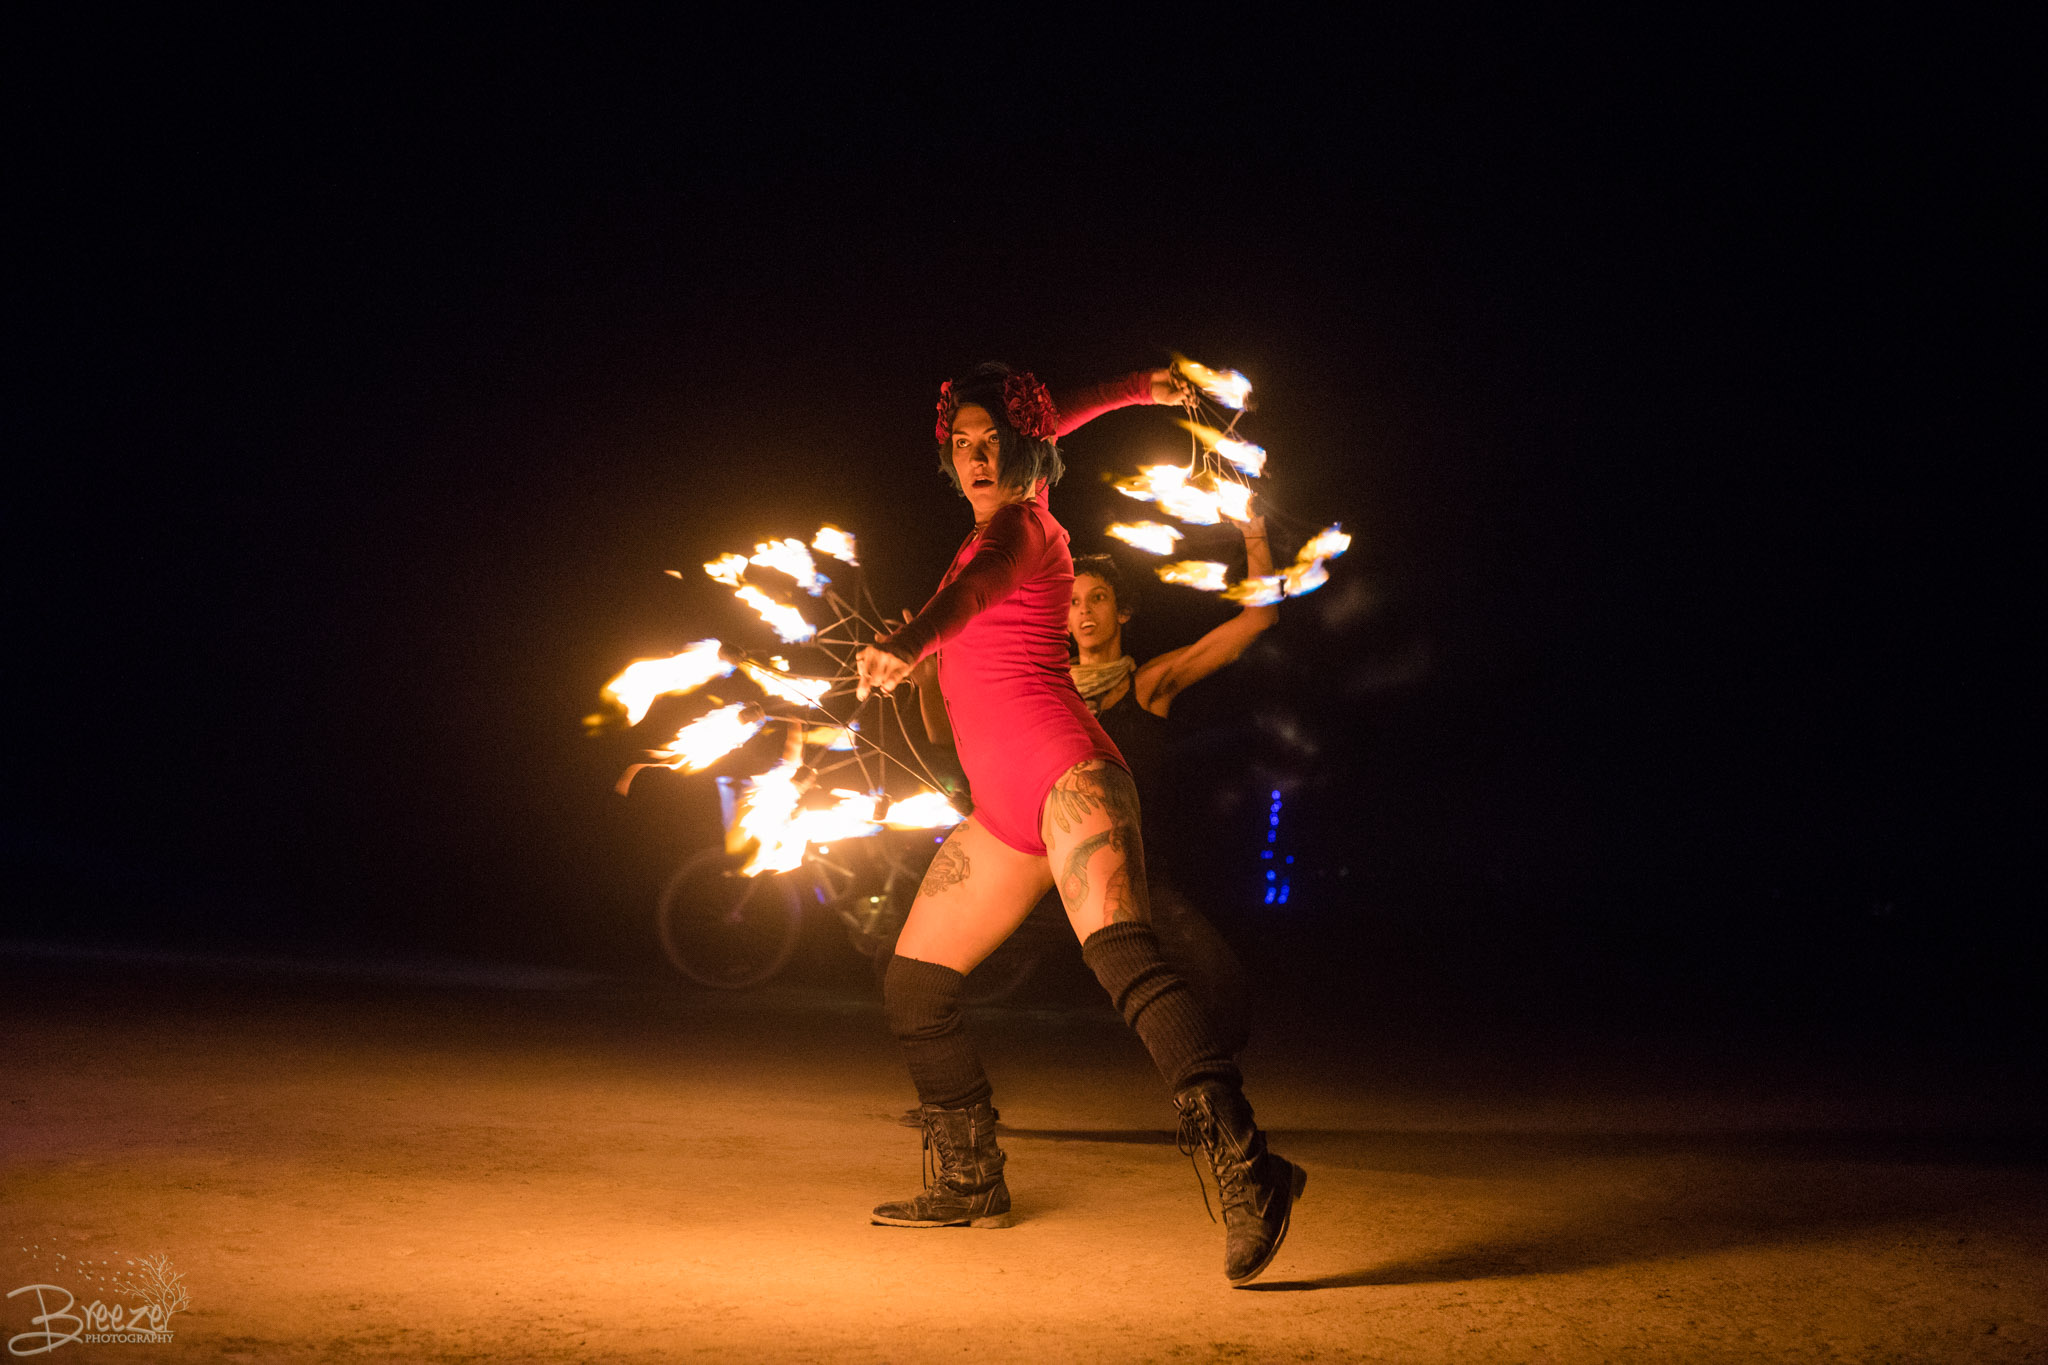 Brie'Ana Breeze Photography & Media - Burning Man 2018-4141.jpg